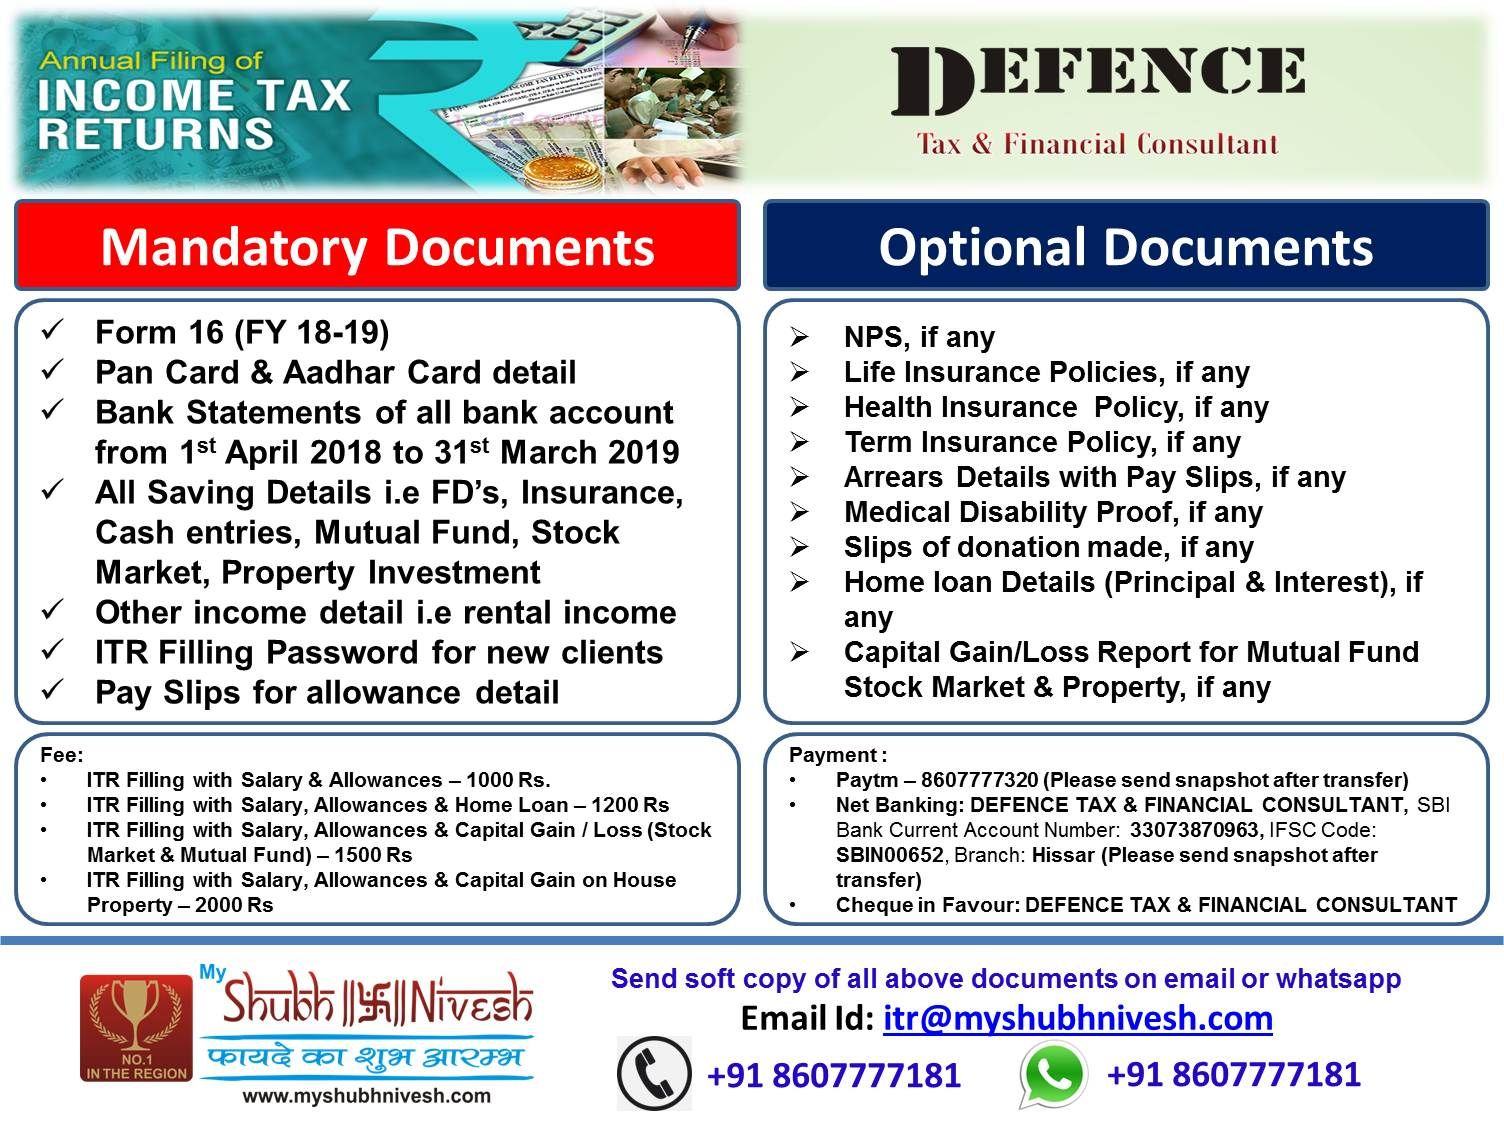 File Your Itr With Us Health Insurance Policies Life Insurance